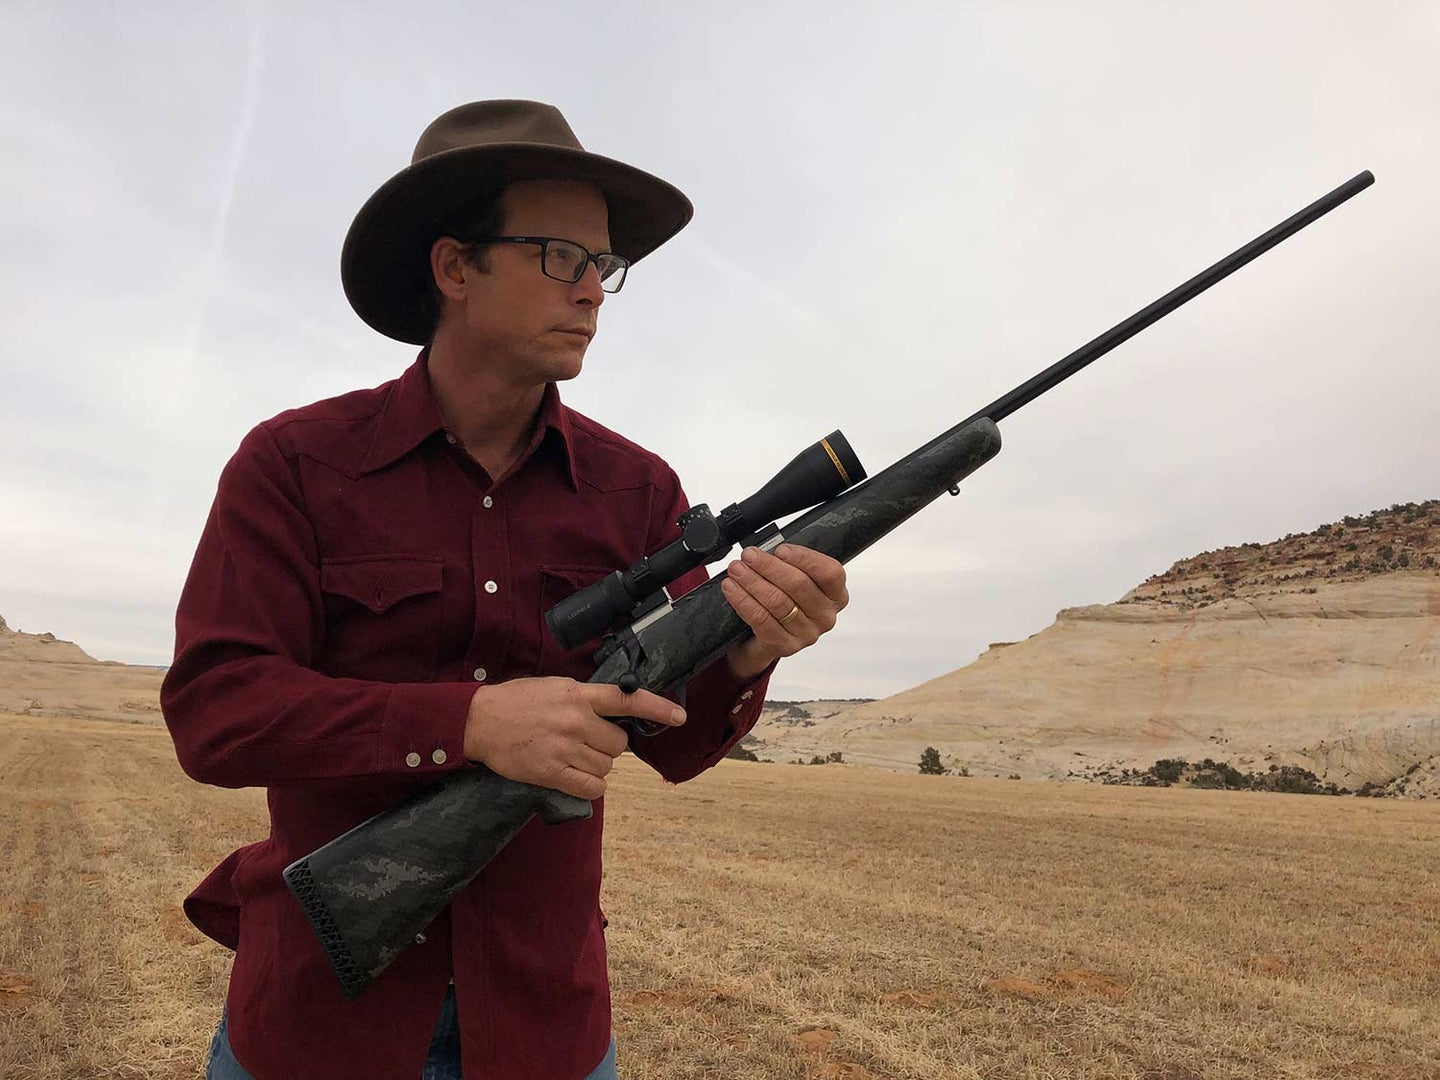 Man in cowboy hat holding a Weatherby Backcountry rifle.